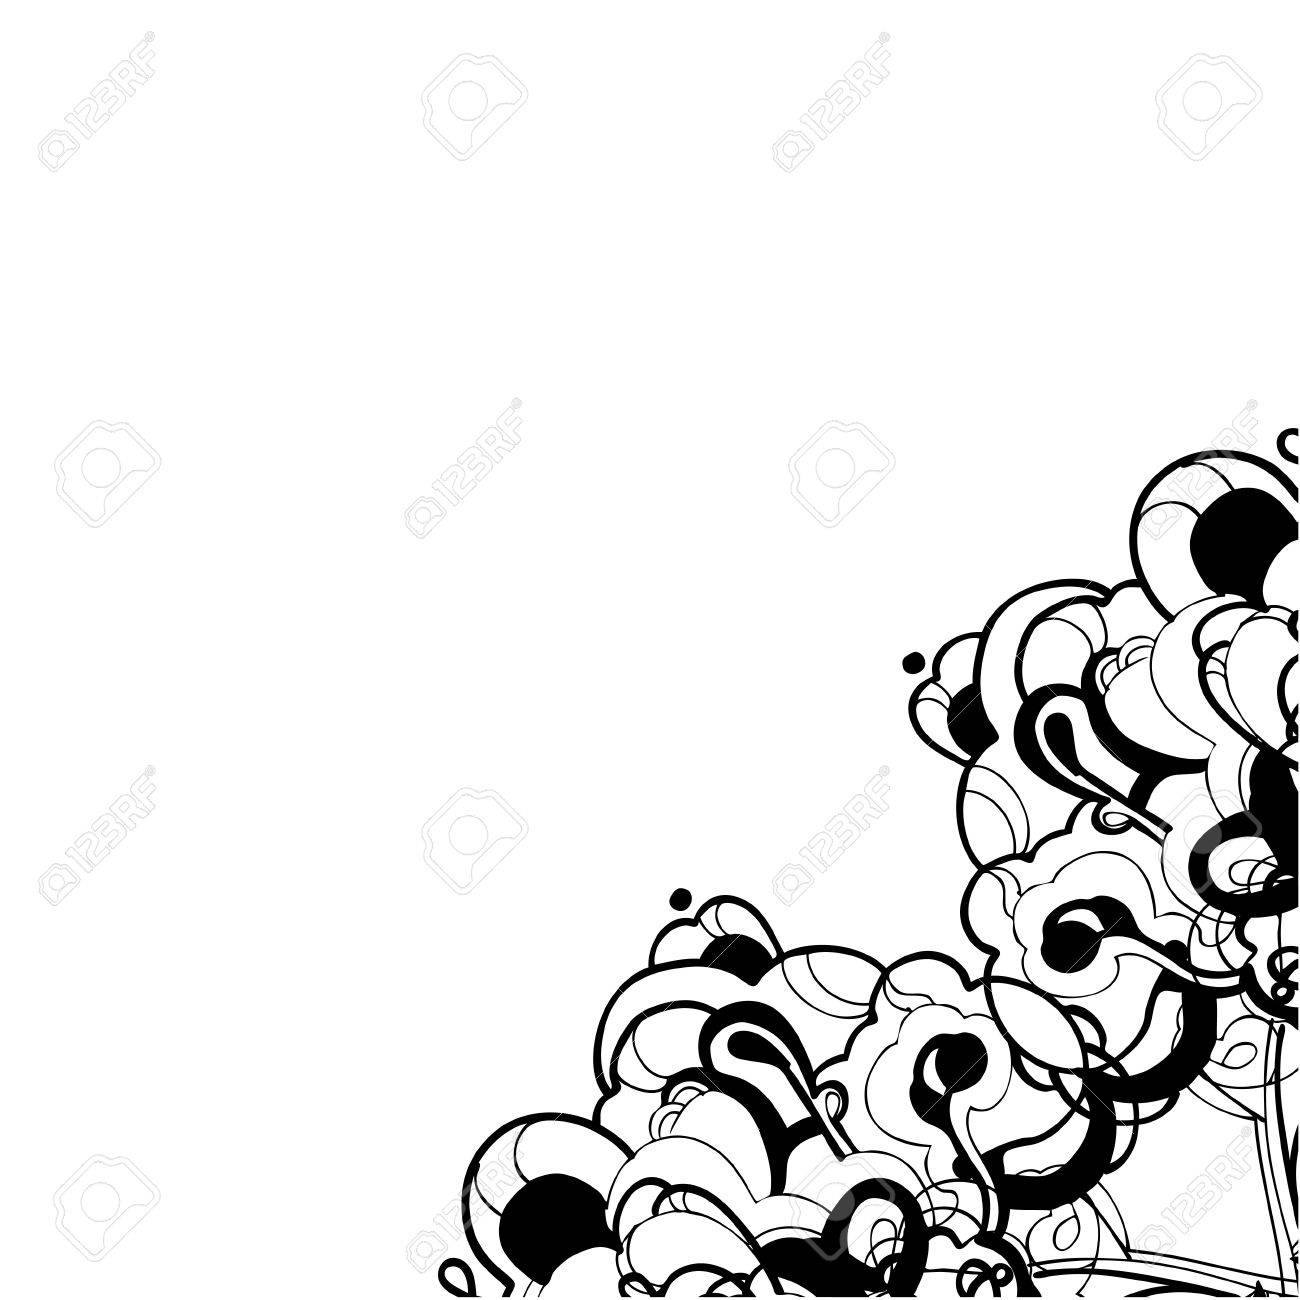 abstract graphic design in black and white Stock Vector - 12358220